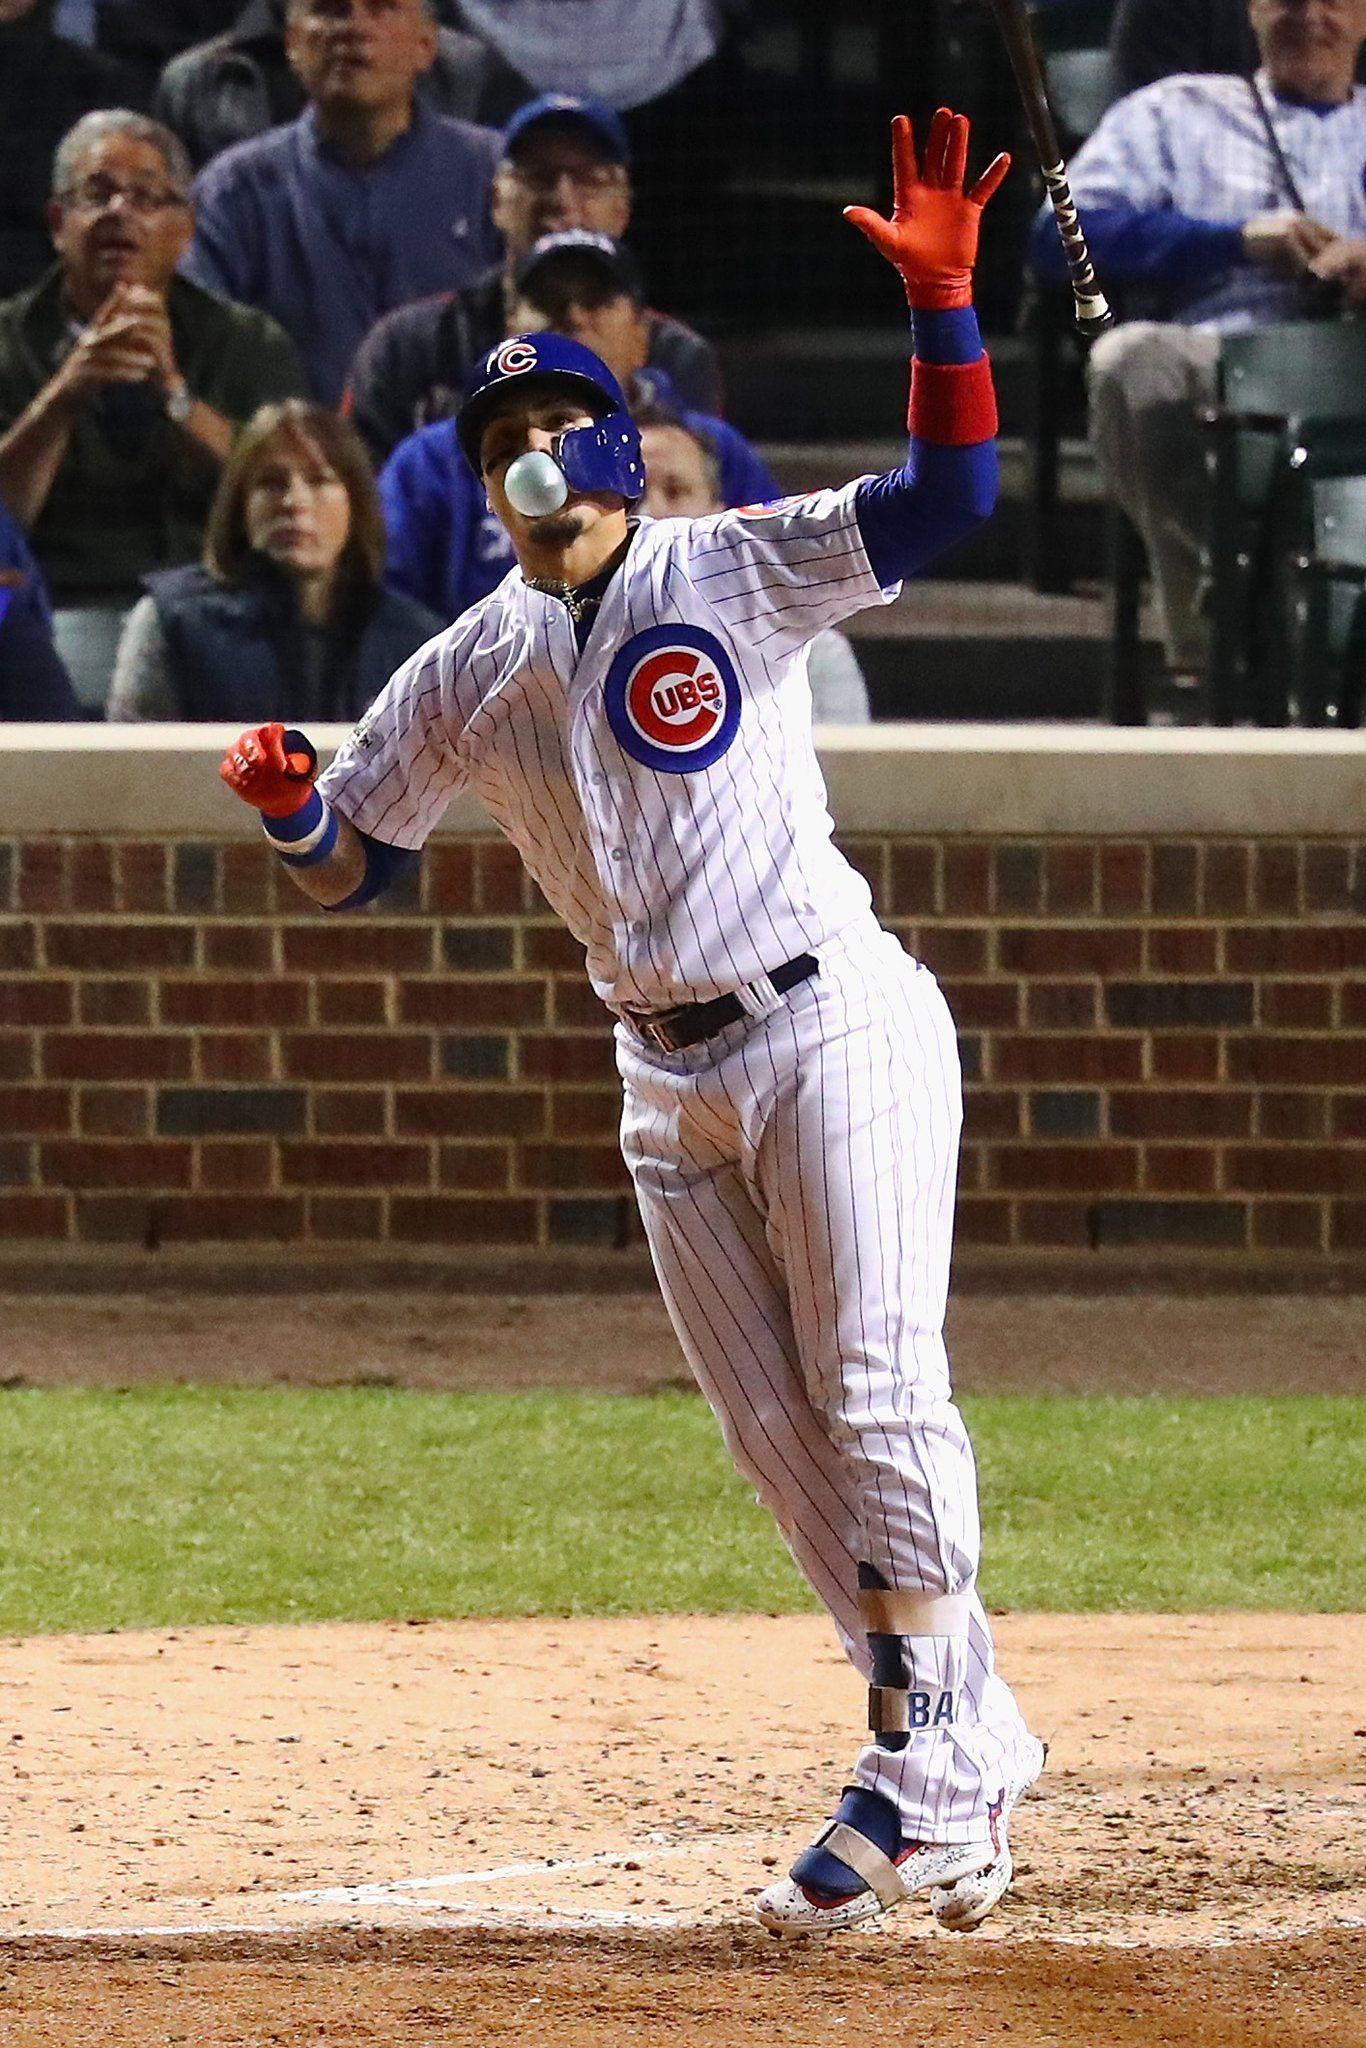 Chicago Cubs On Twitter Cubs Chicago Cubs Baseball Chicago Cubs